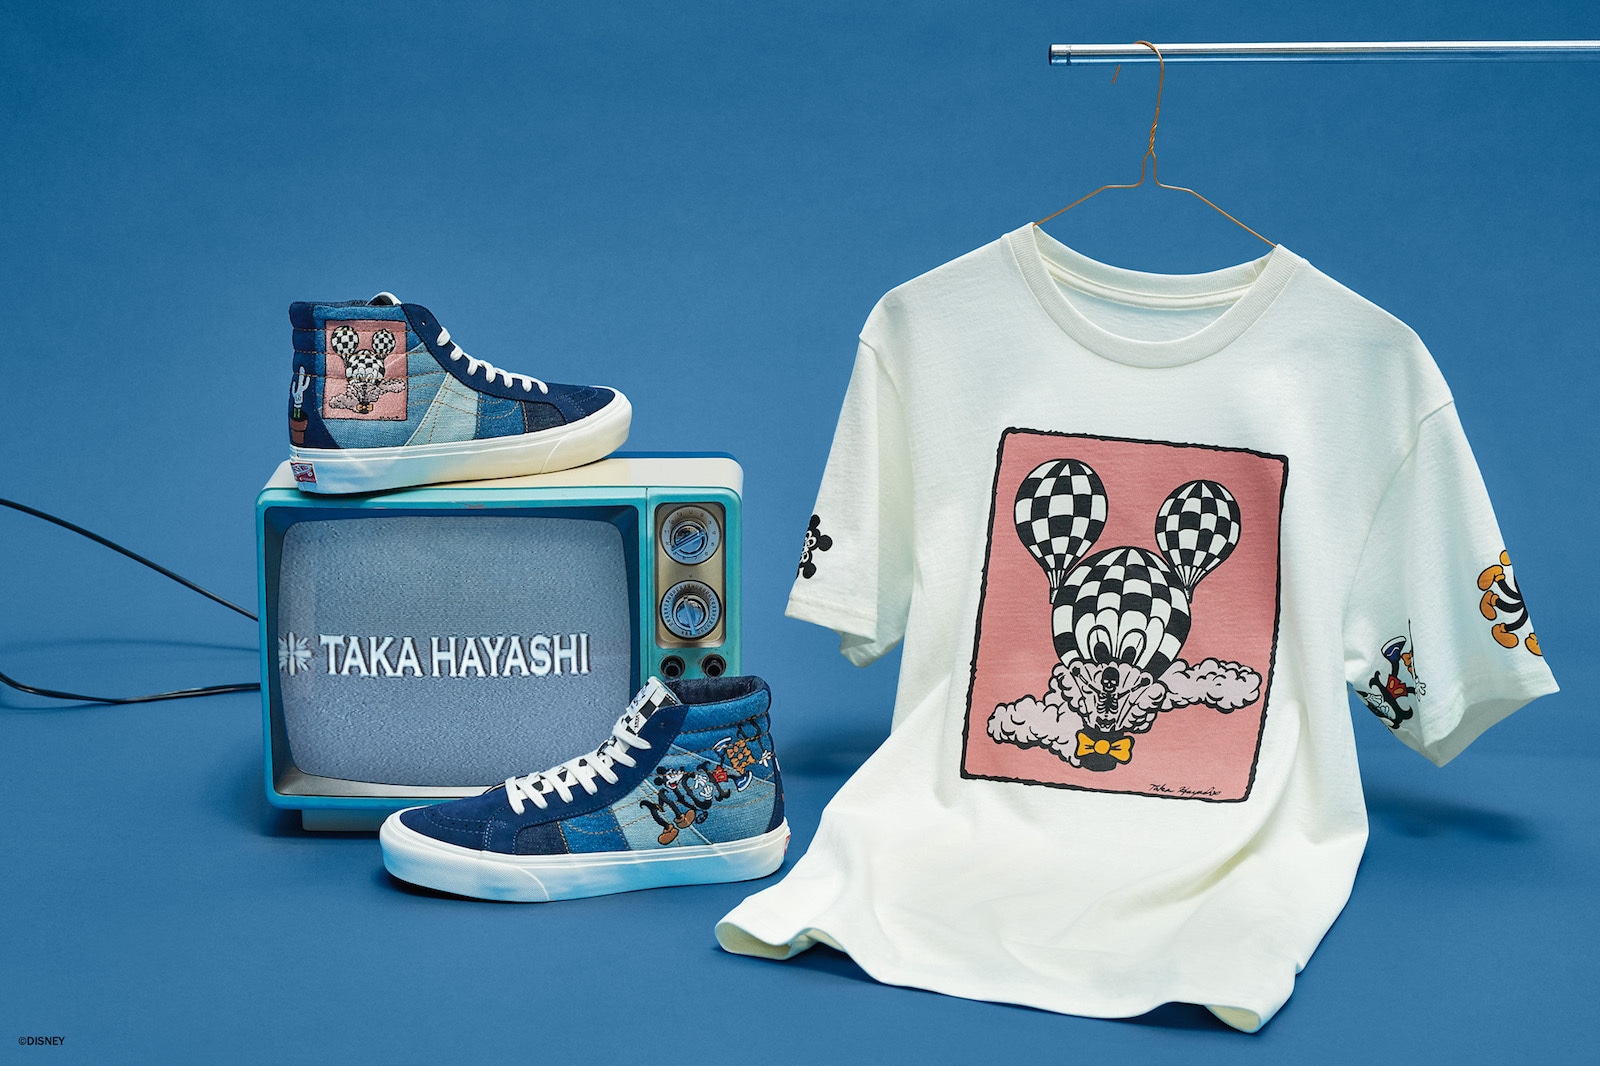 Sneakers and a tee shirt from the Vault by Vans Mickey Mouse collection